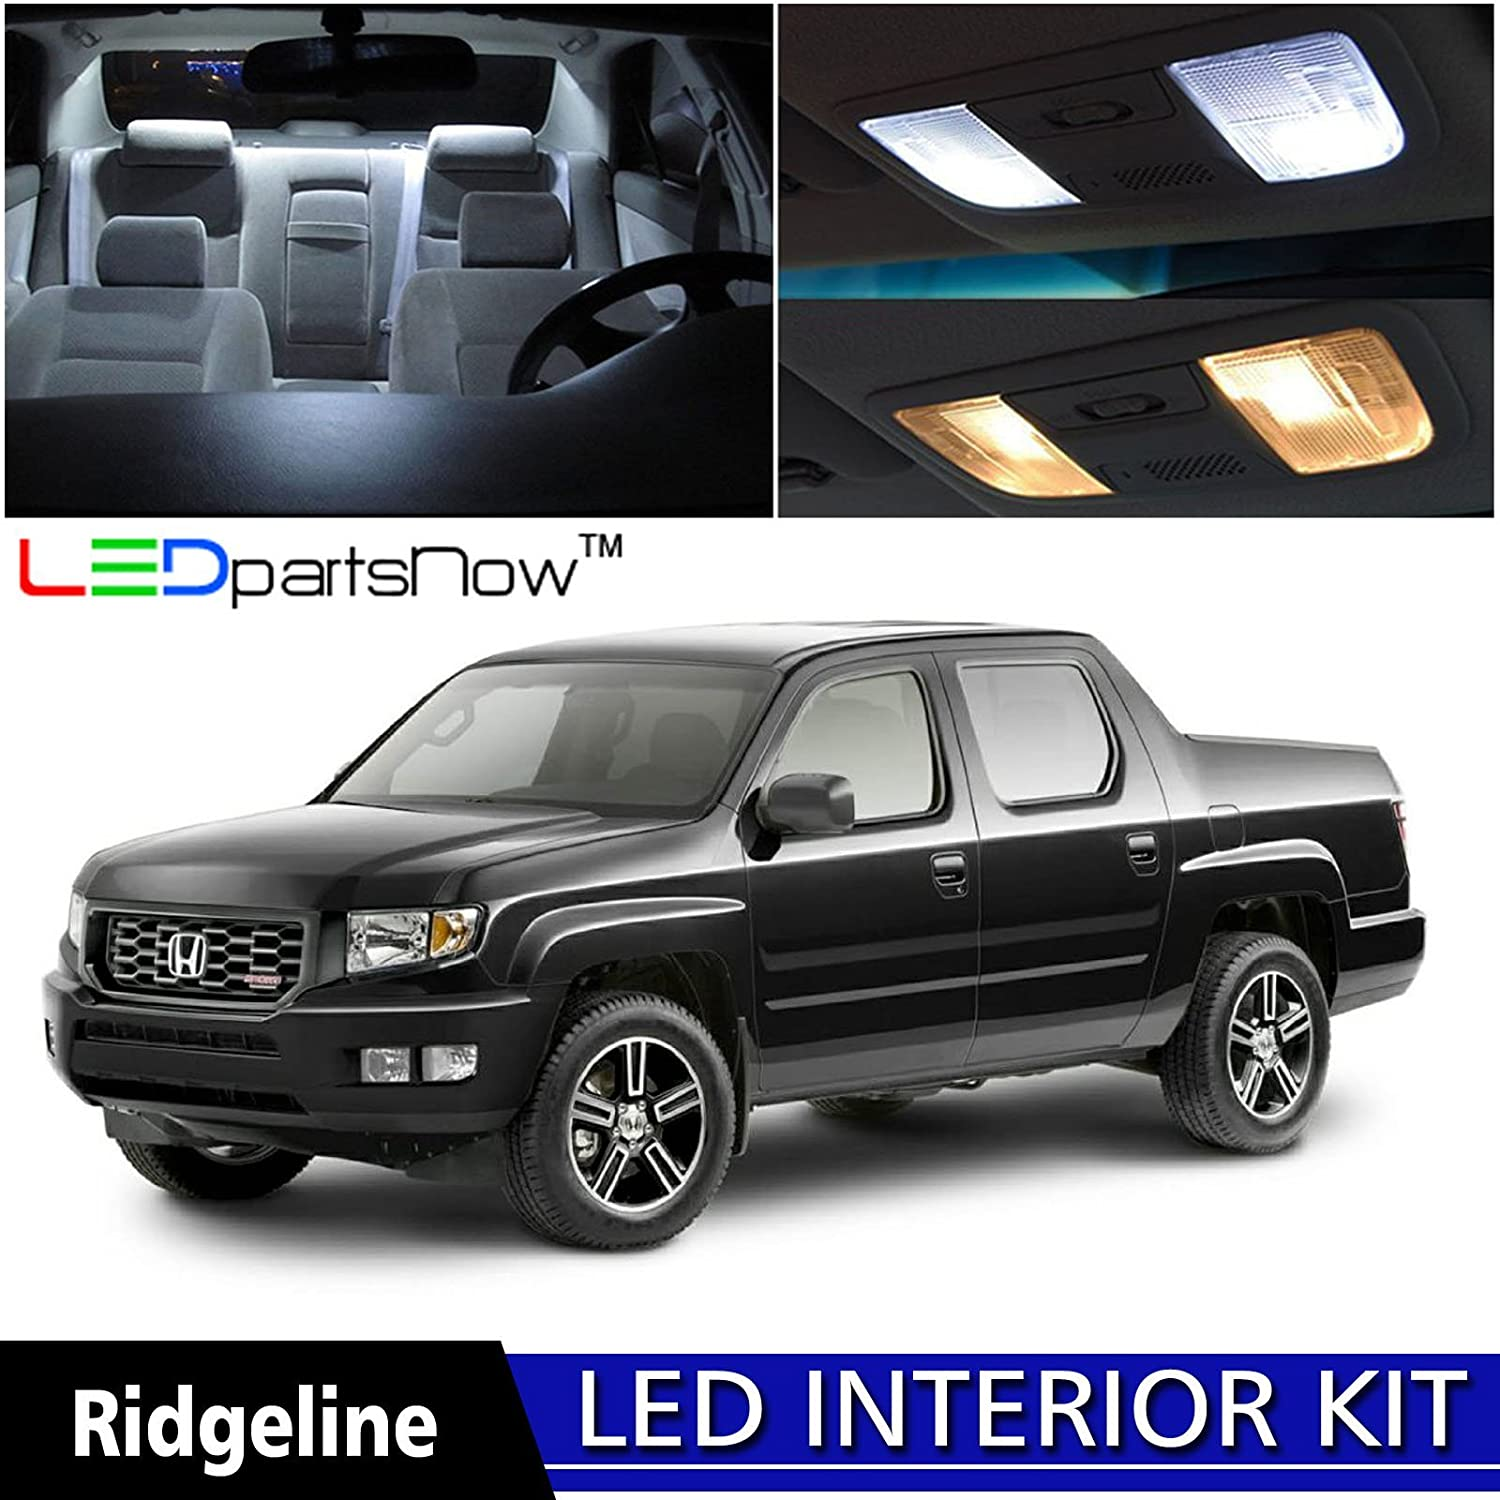 81kAR%2B389mL._SL1500_ amazon com ledpartsnow 2006 2014 honda ridgeline led interior 2006 Honda Ridgeline Power Steering Pump at readyjetset.co